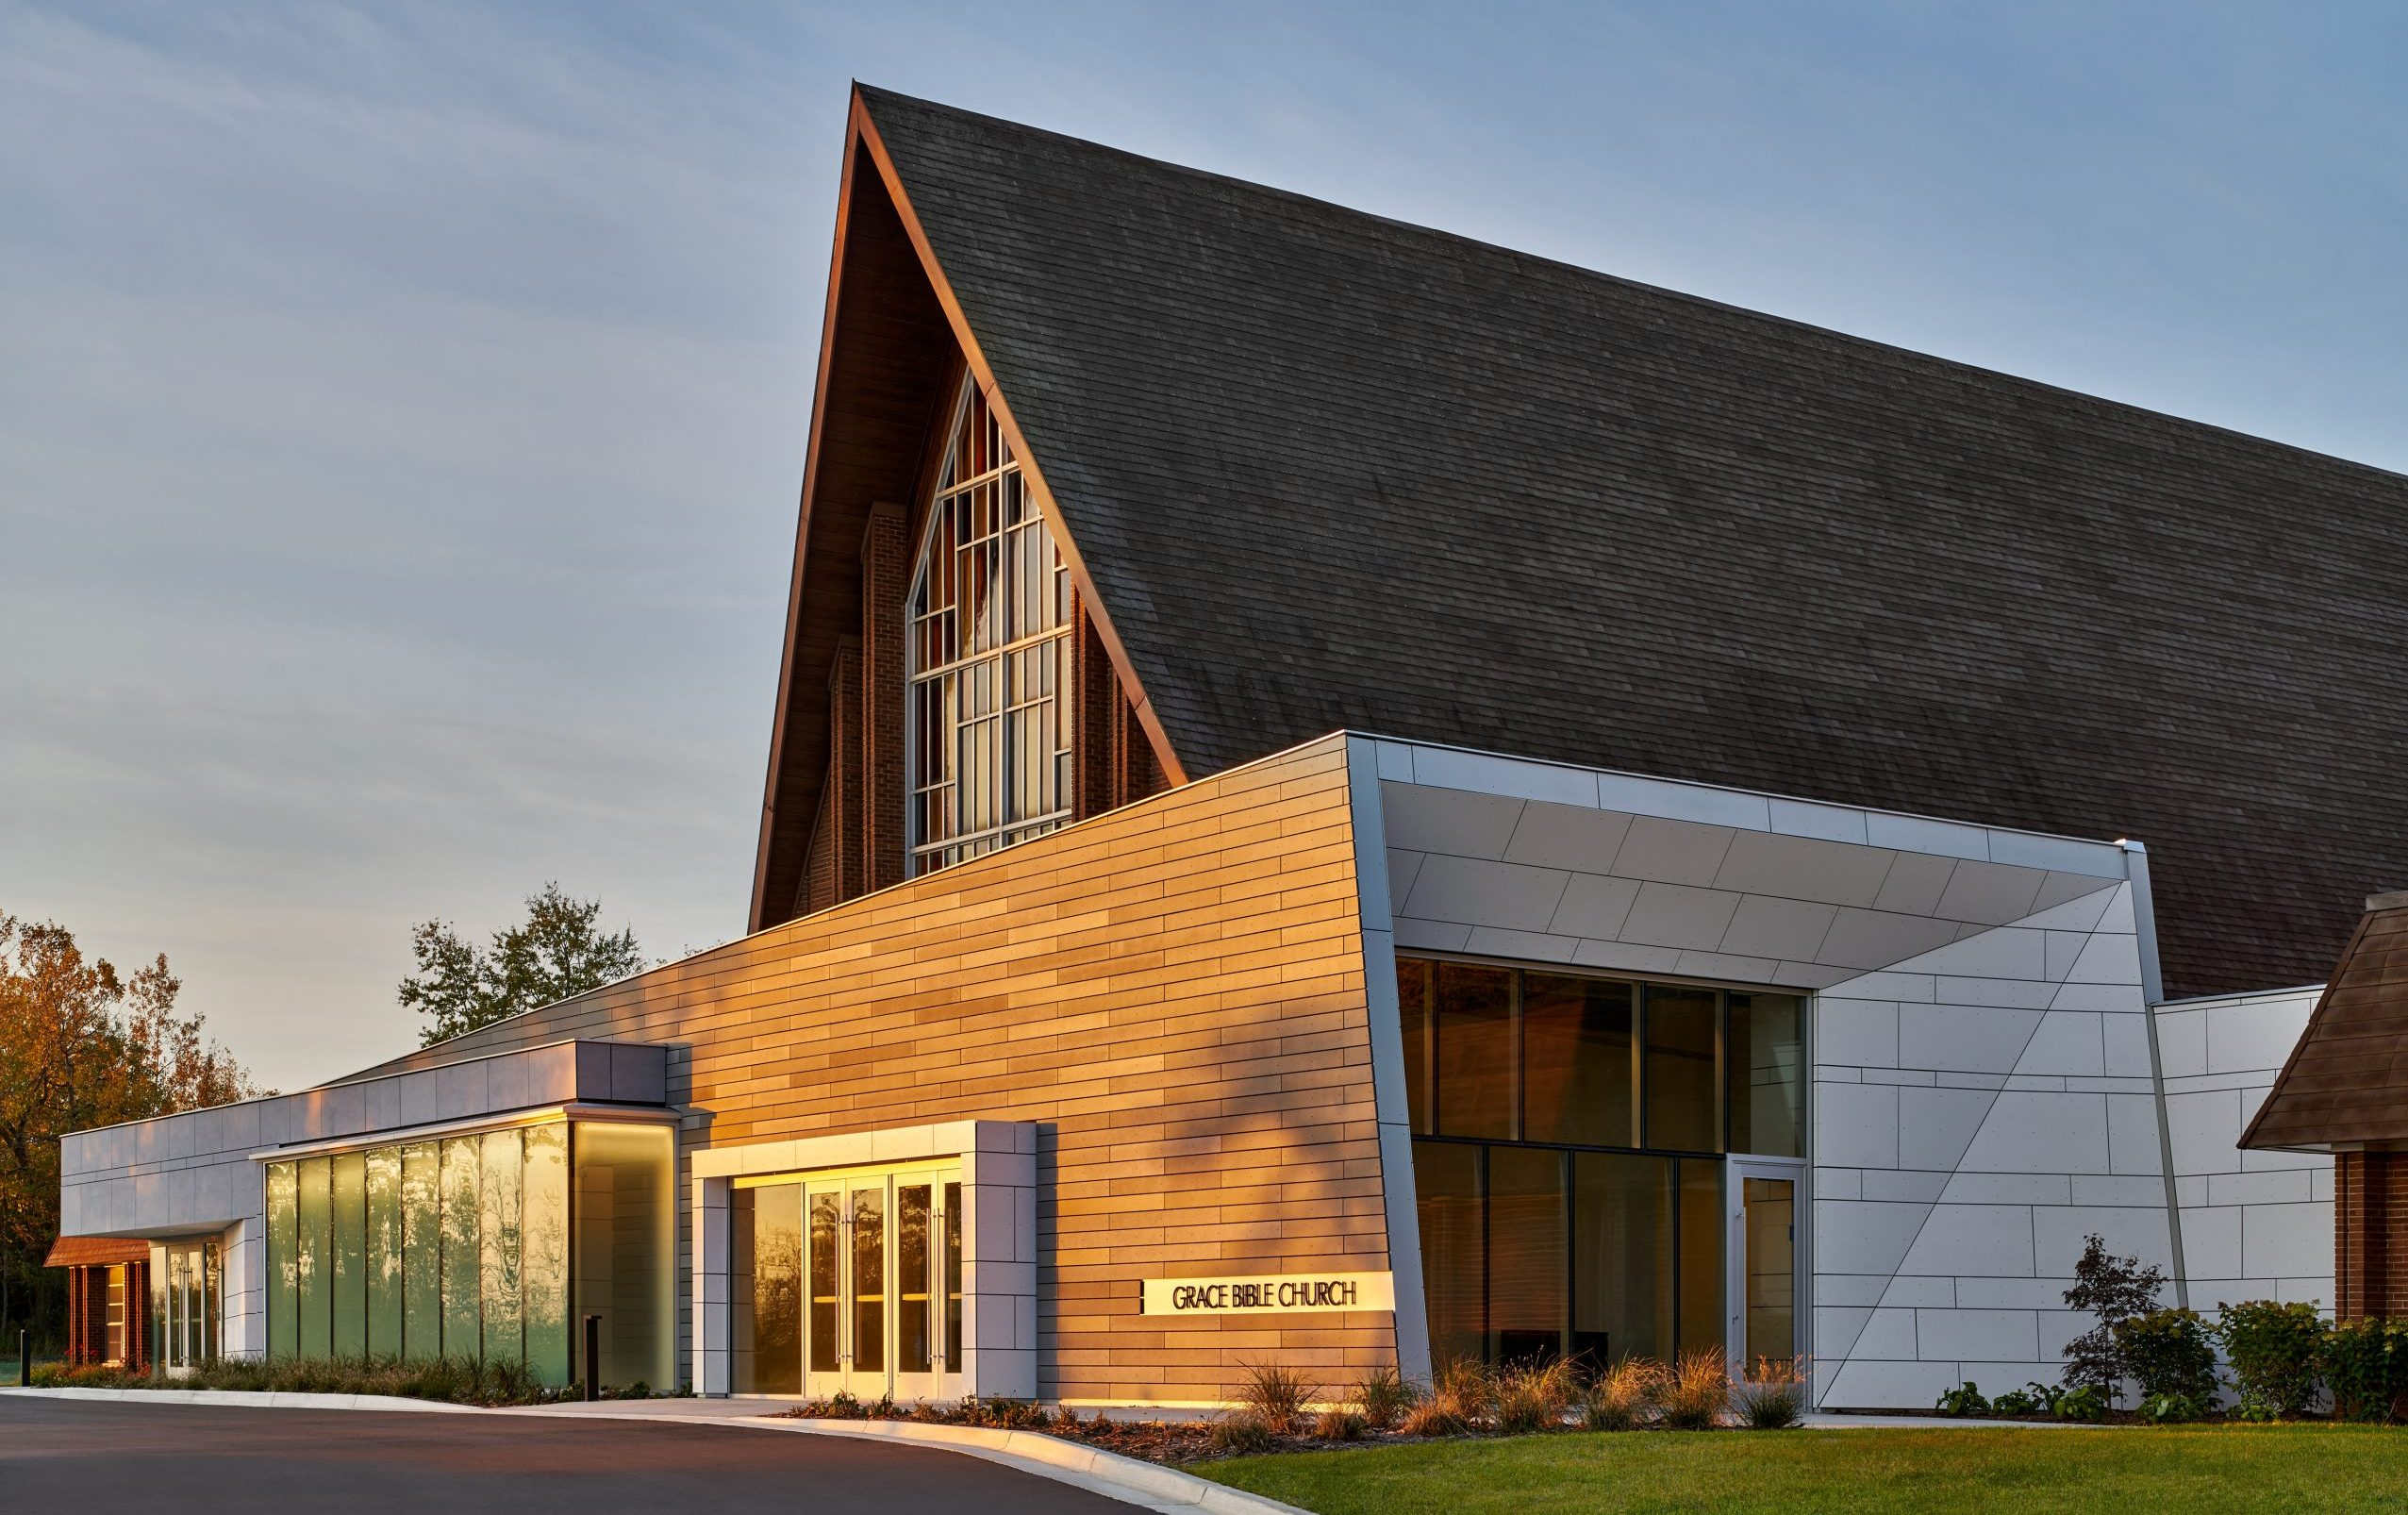 Exterior elevation of addition at Grace Bible Church Project in Ann Arbor Michigan Architecture and Interior Design